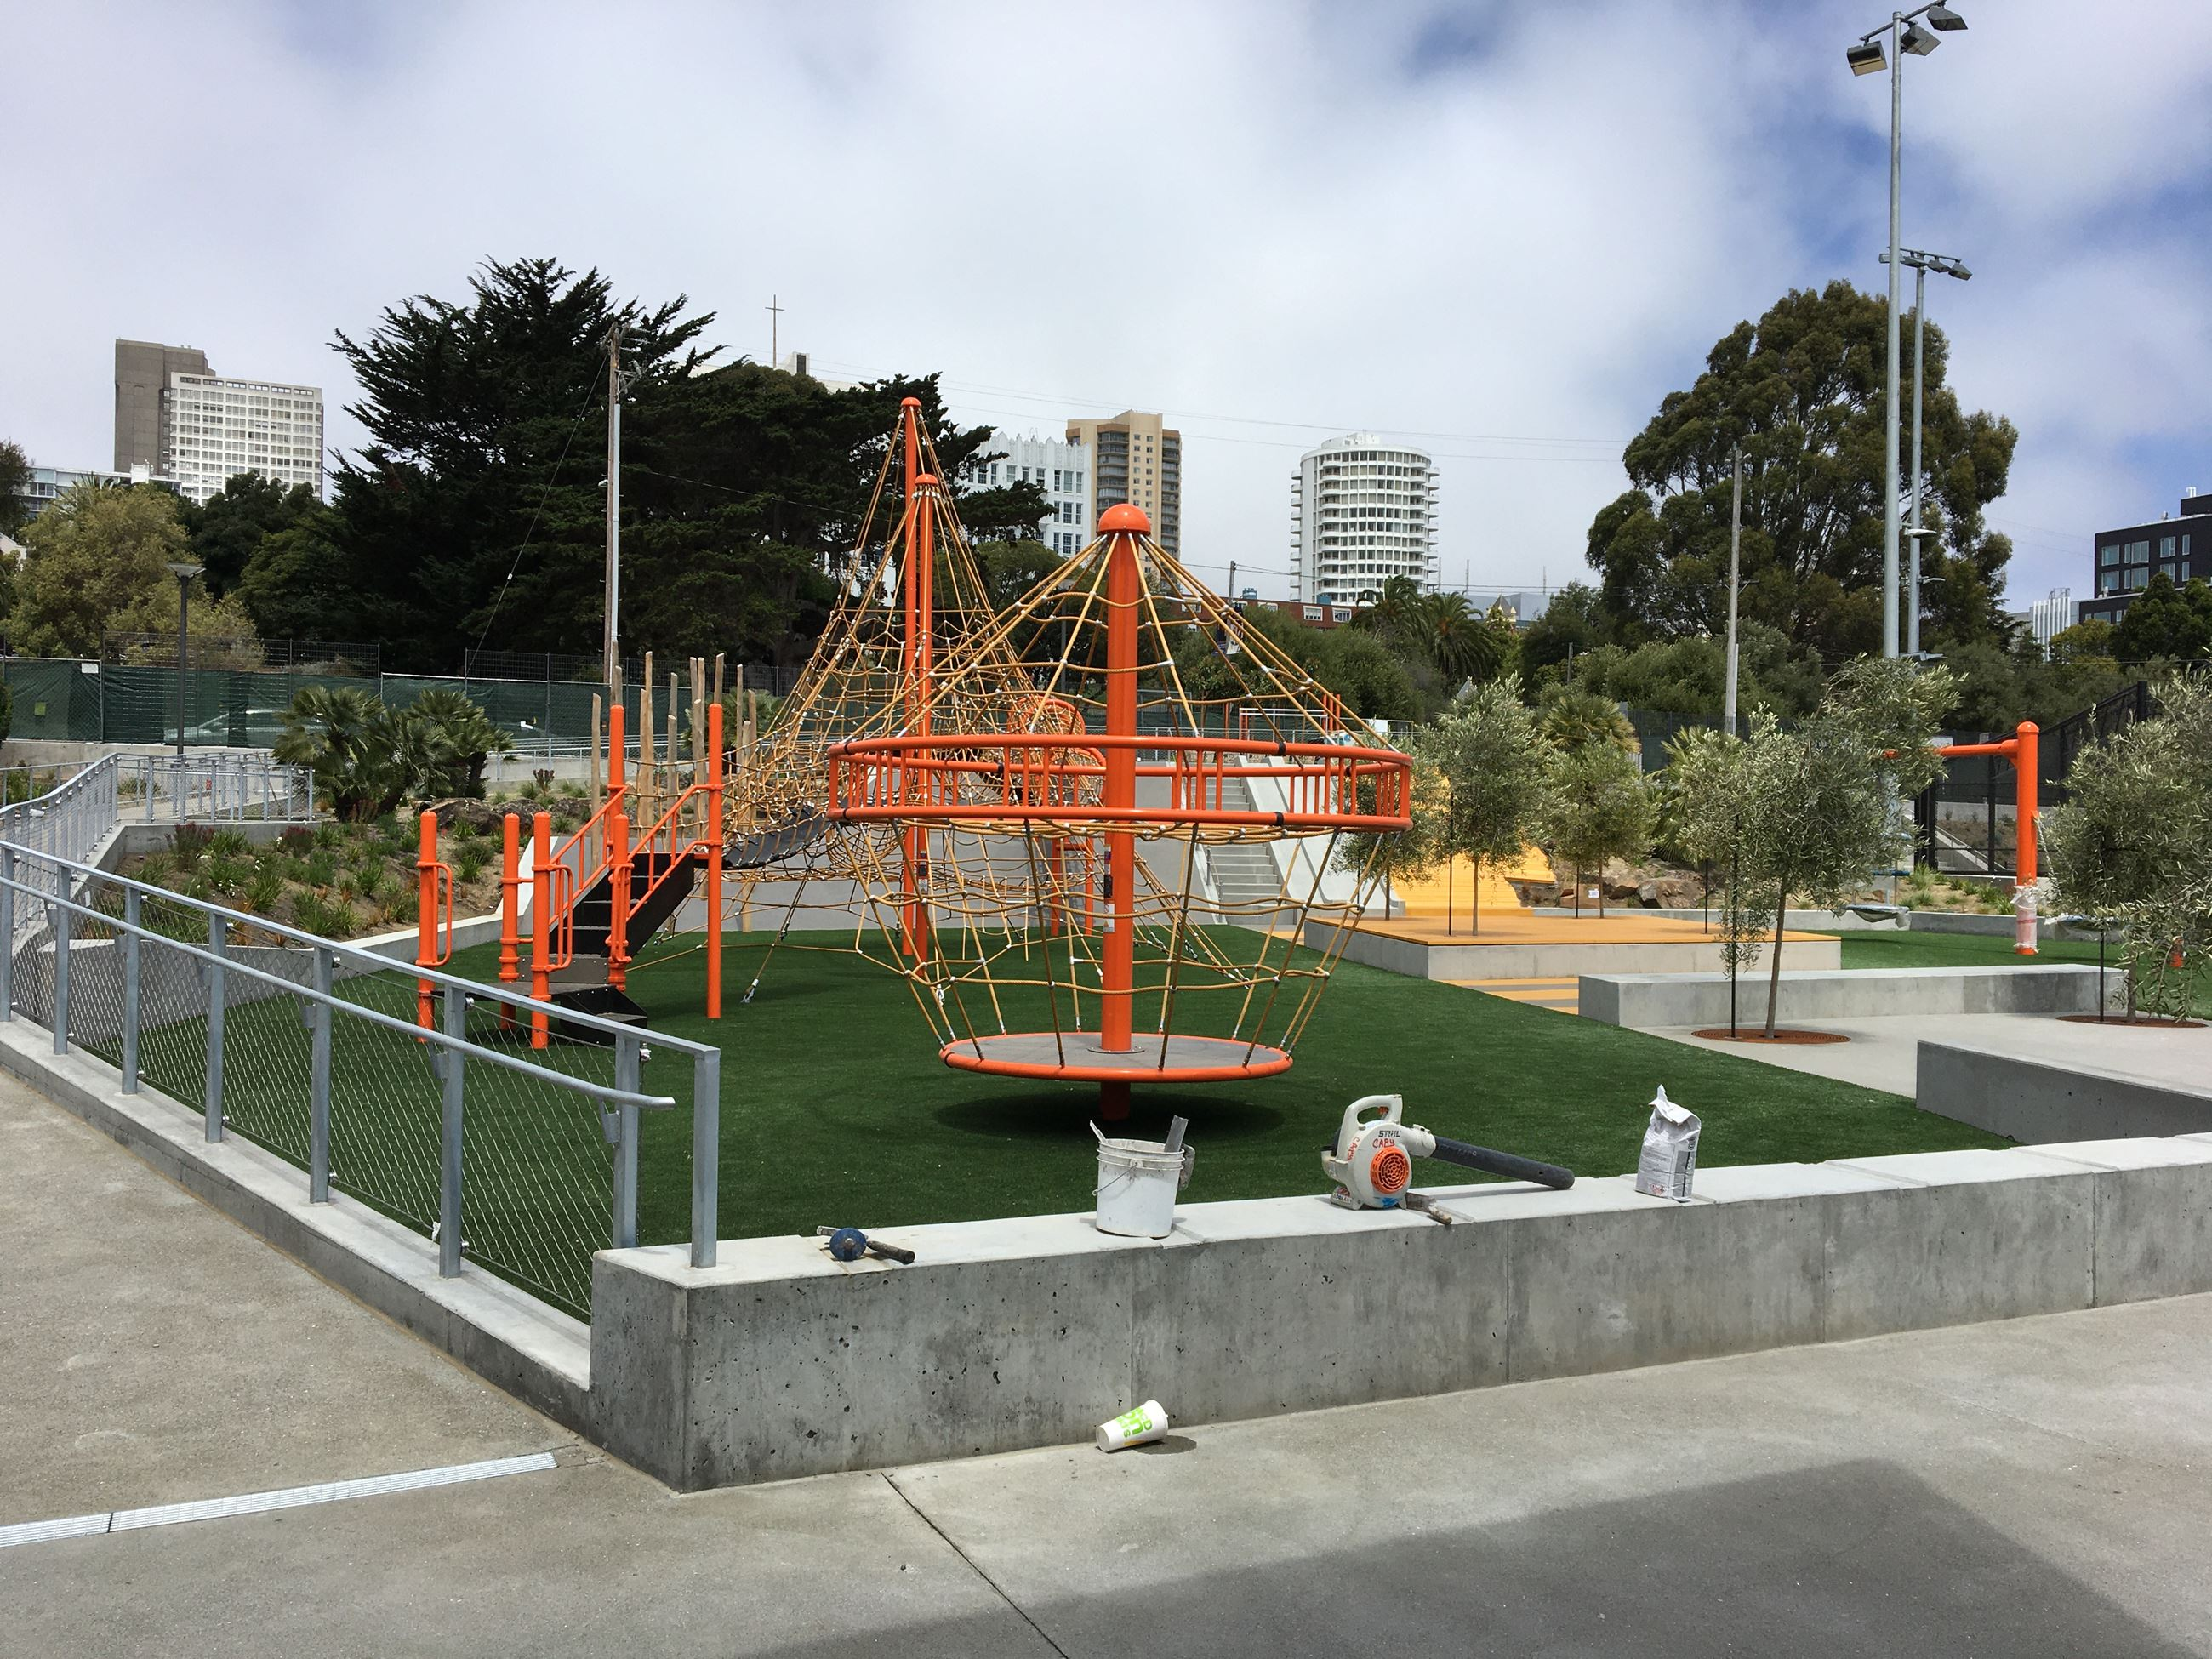 Orange steel pipe and net Playground climbing and spinning bird cage. Bench seating on the left.